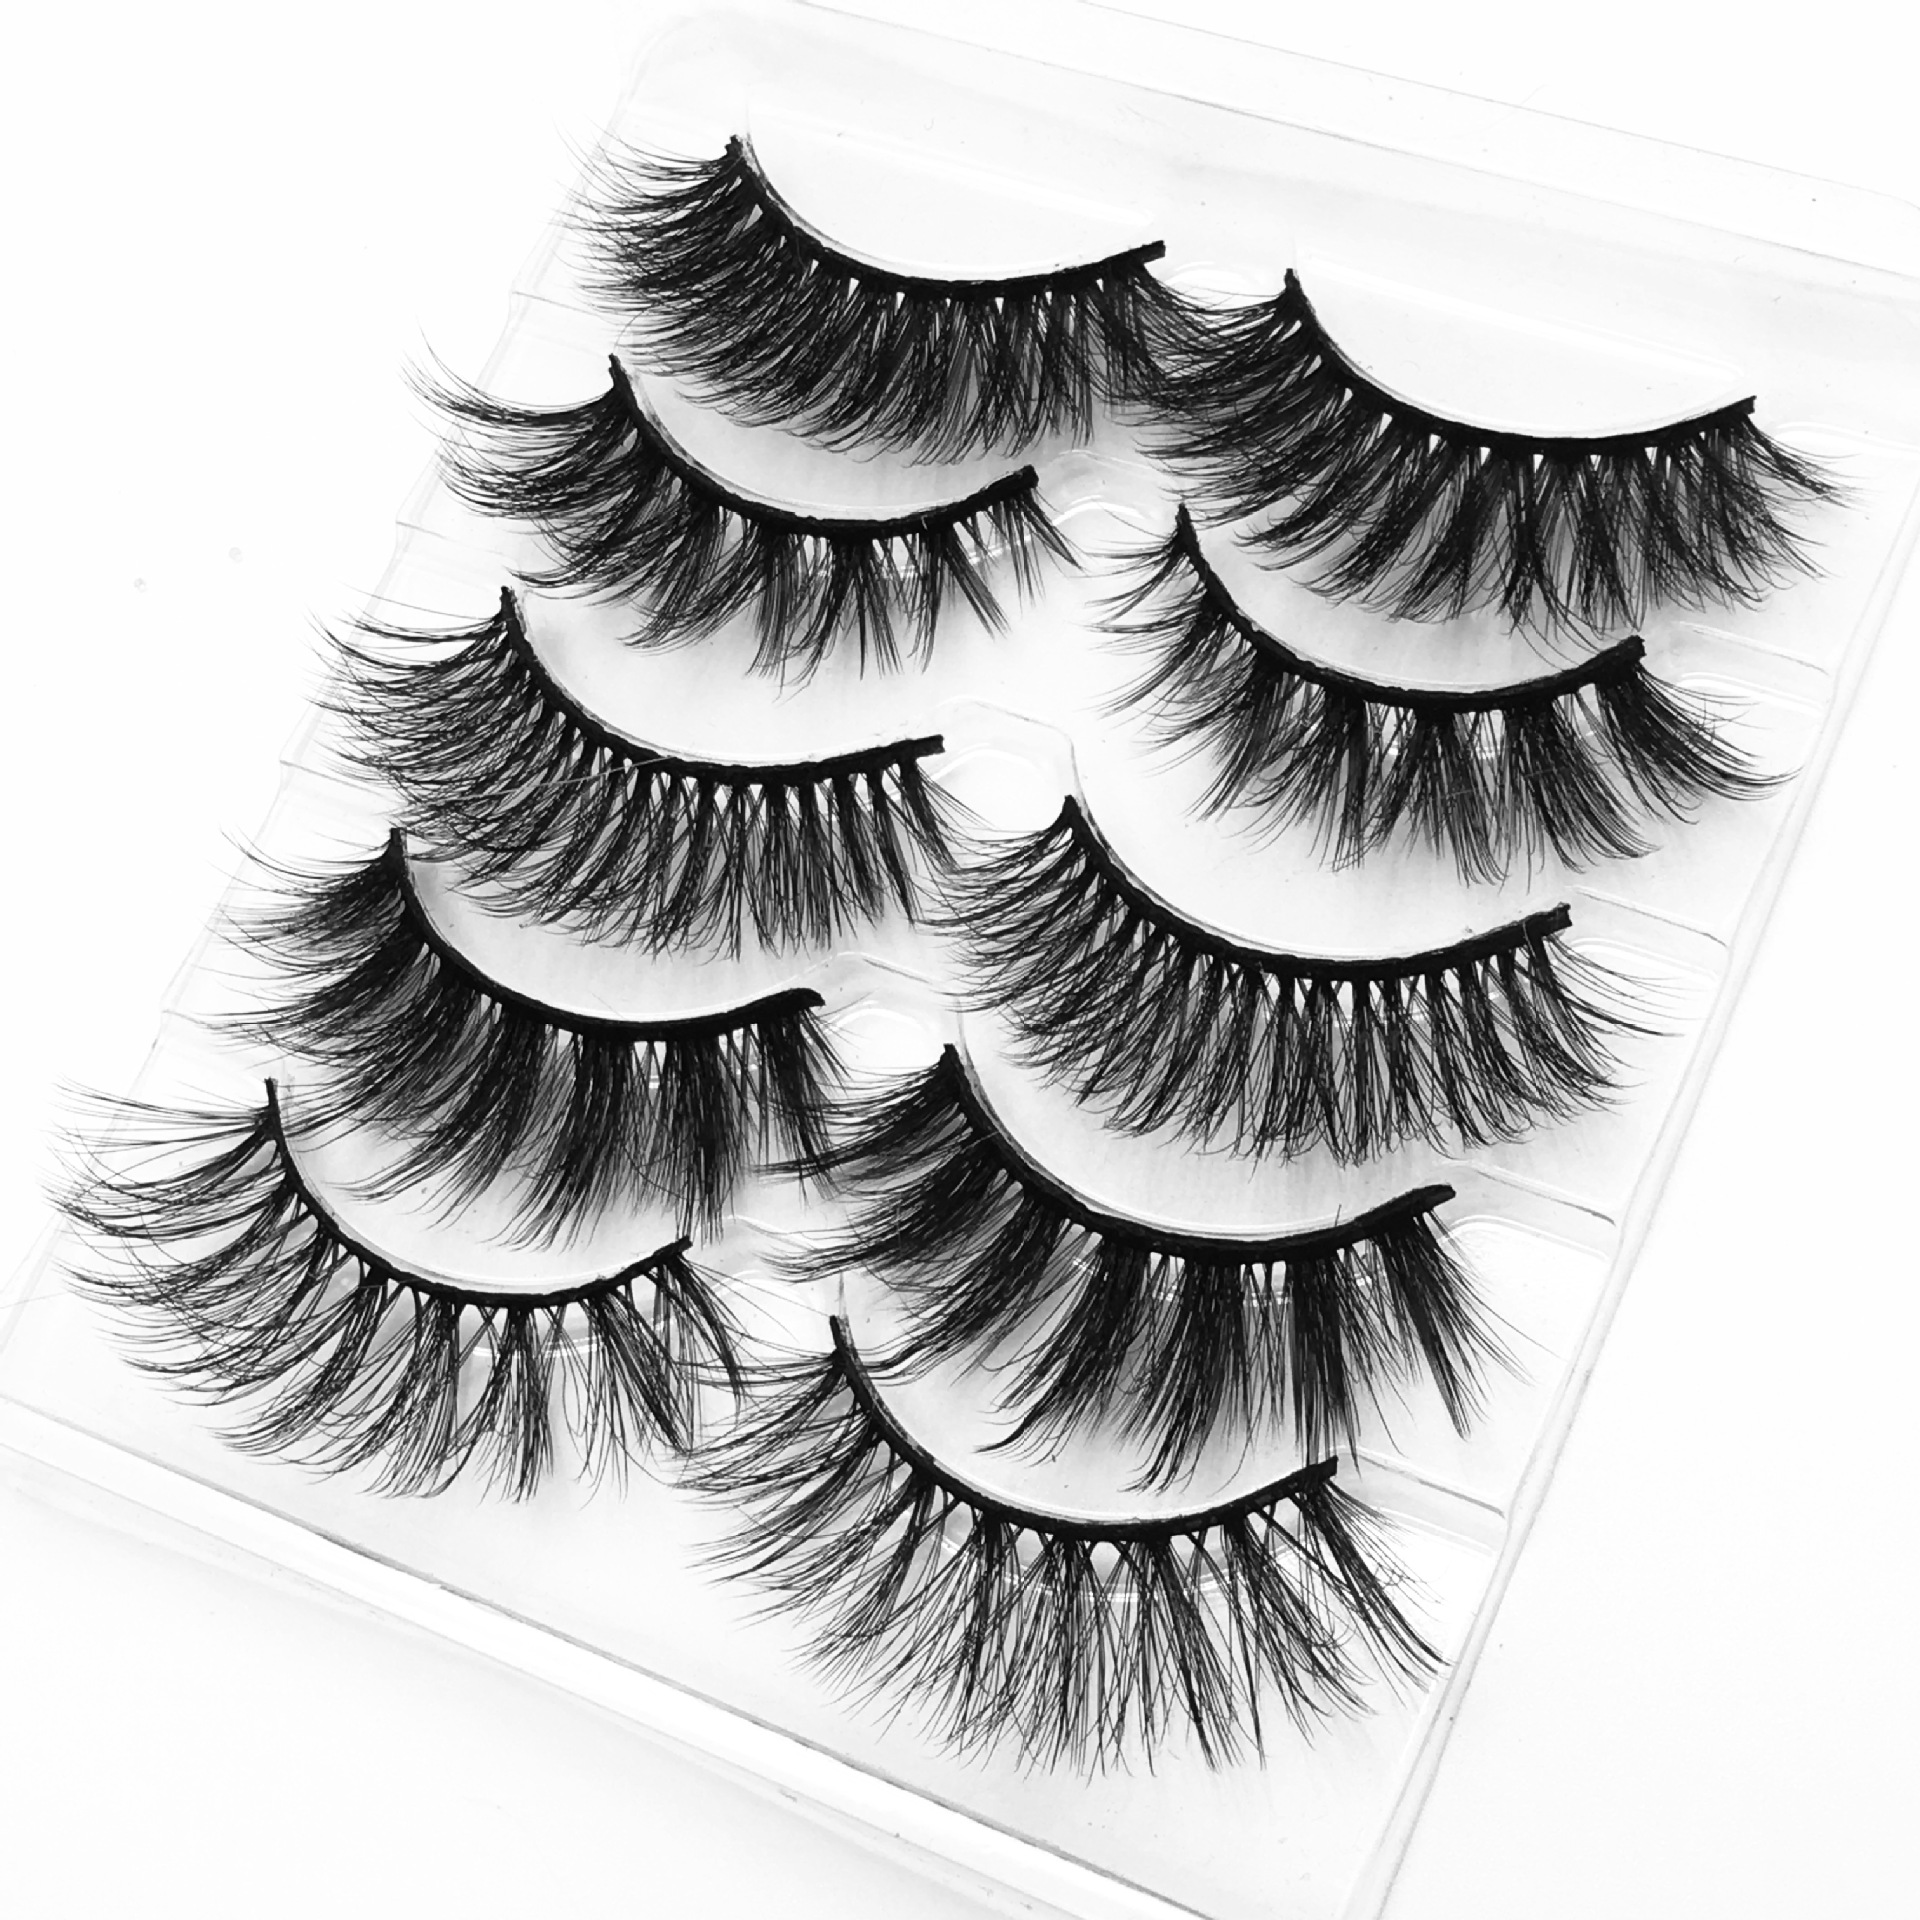 Mink eyelashes 5 pairs of handmade 3d mink lashes natural eyelashes extended beauty makeup false eyelashes 2